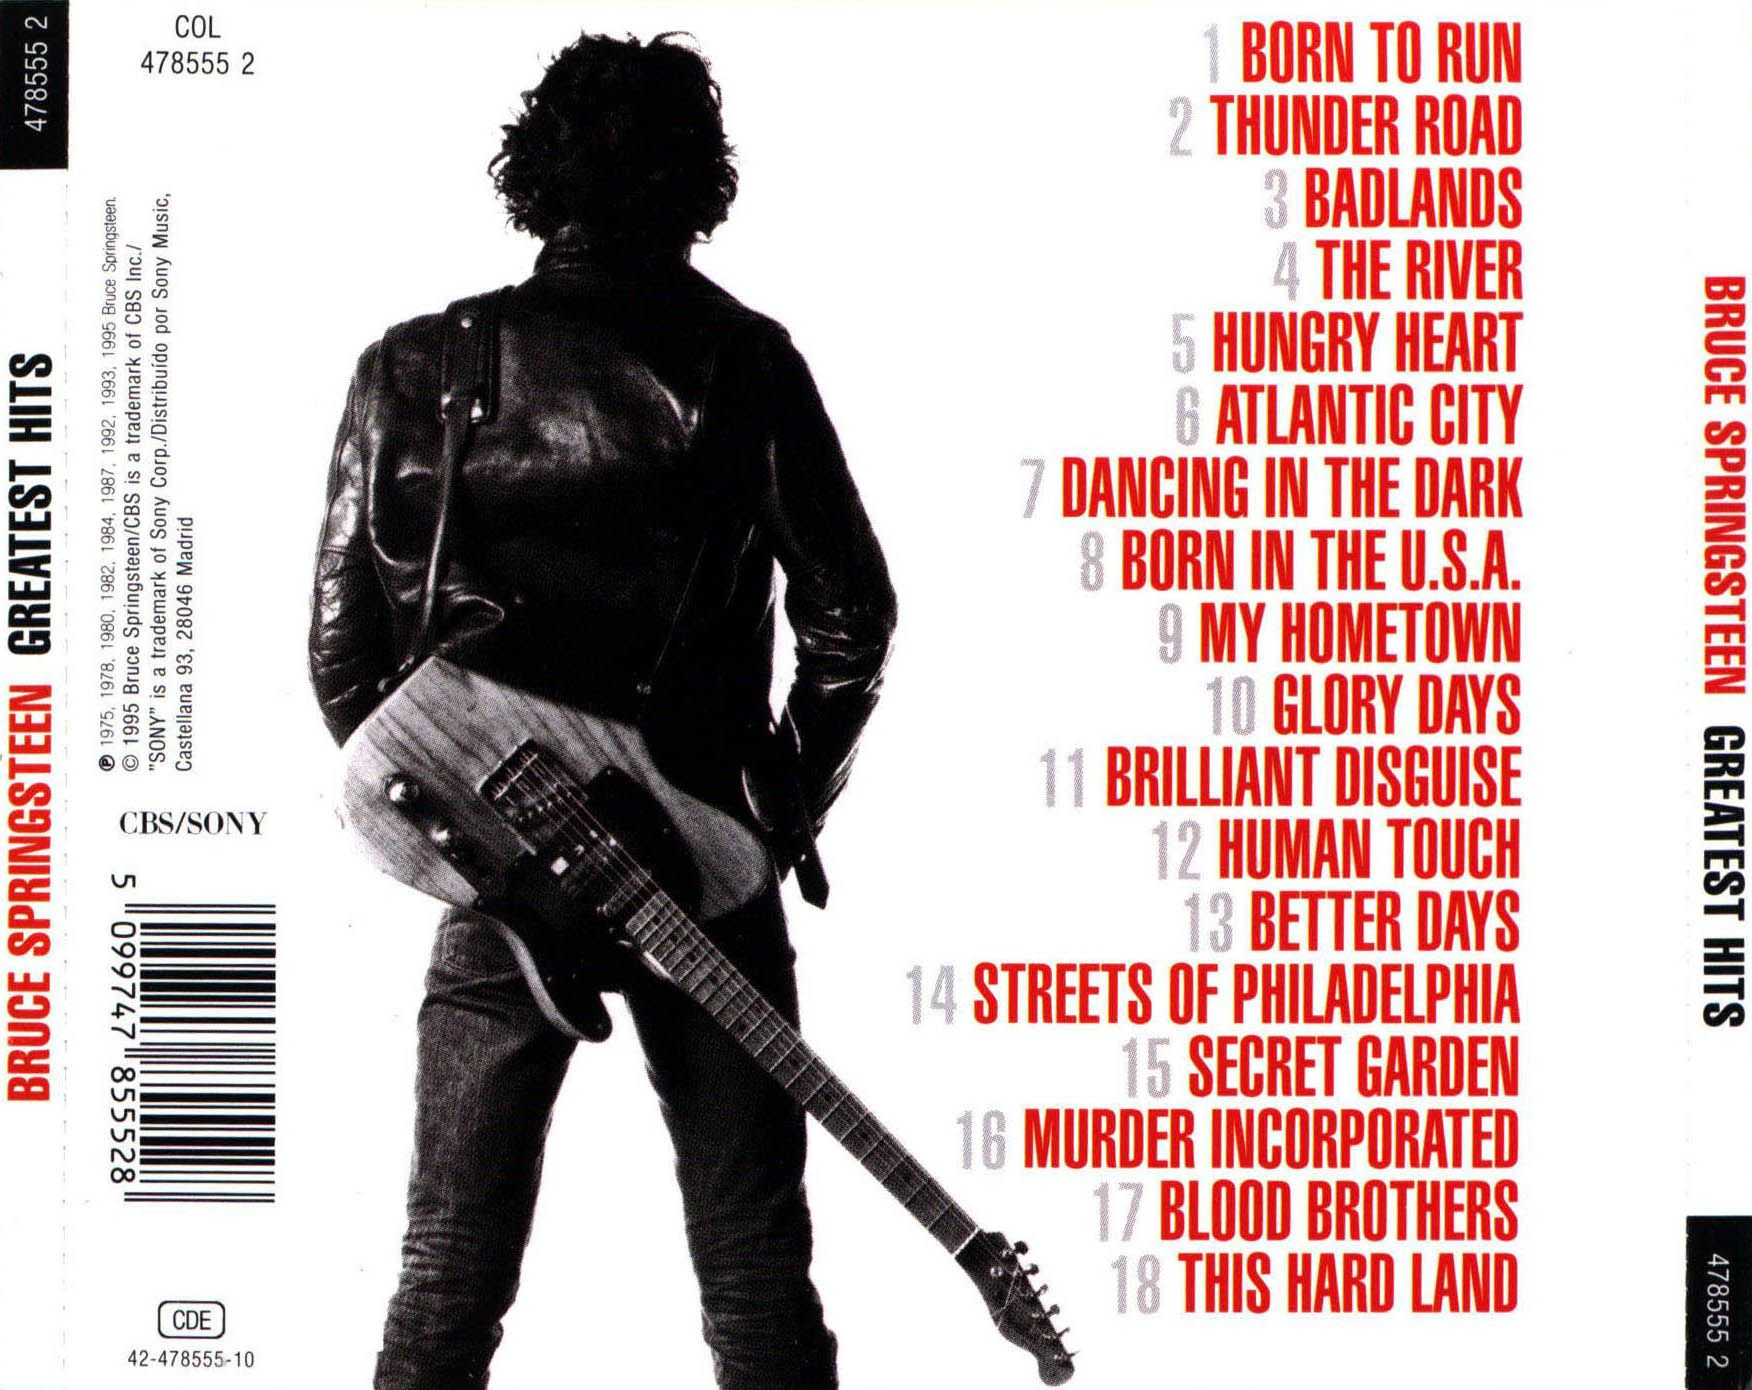 Caratula Trasera De Bruce Springsteen Greatest Hits Bruce Springsteen Cover